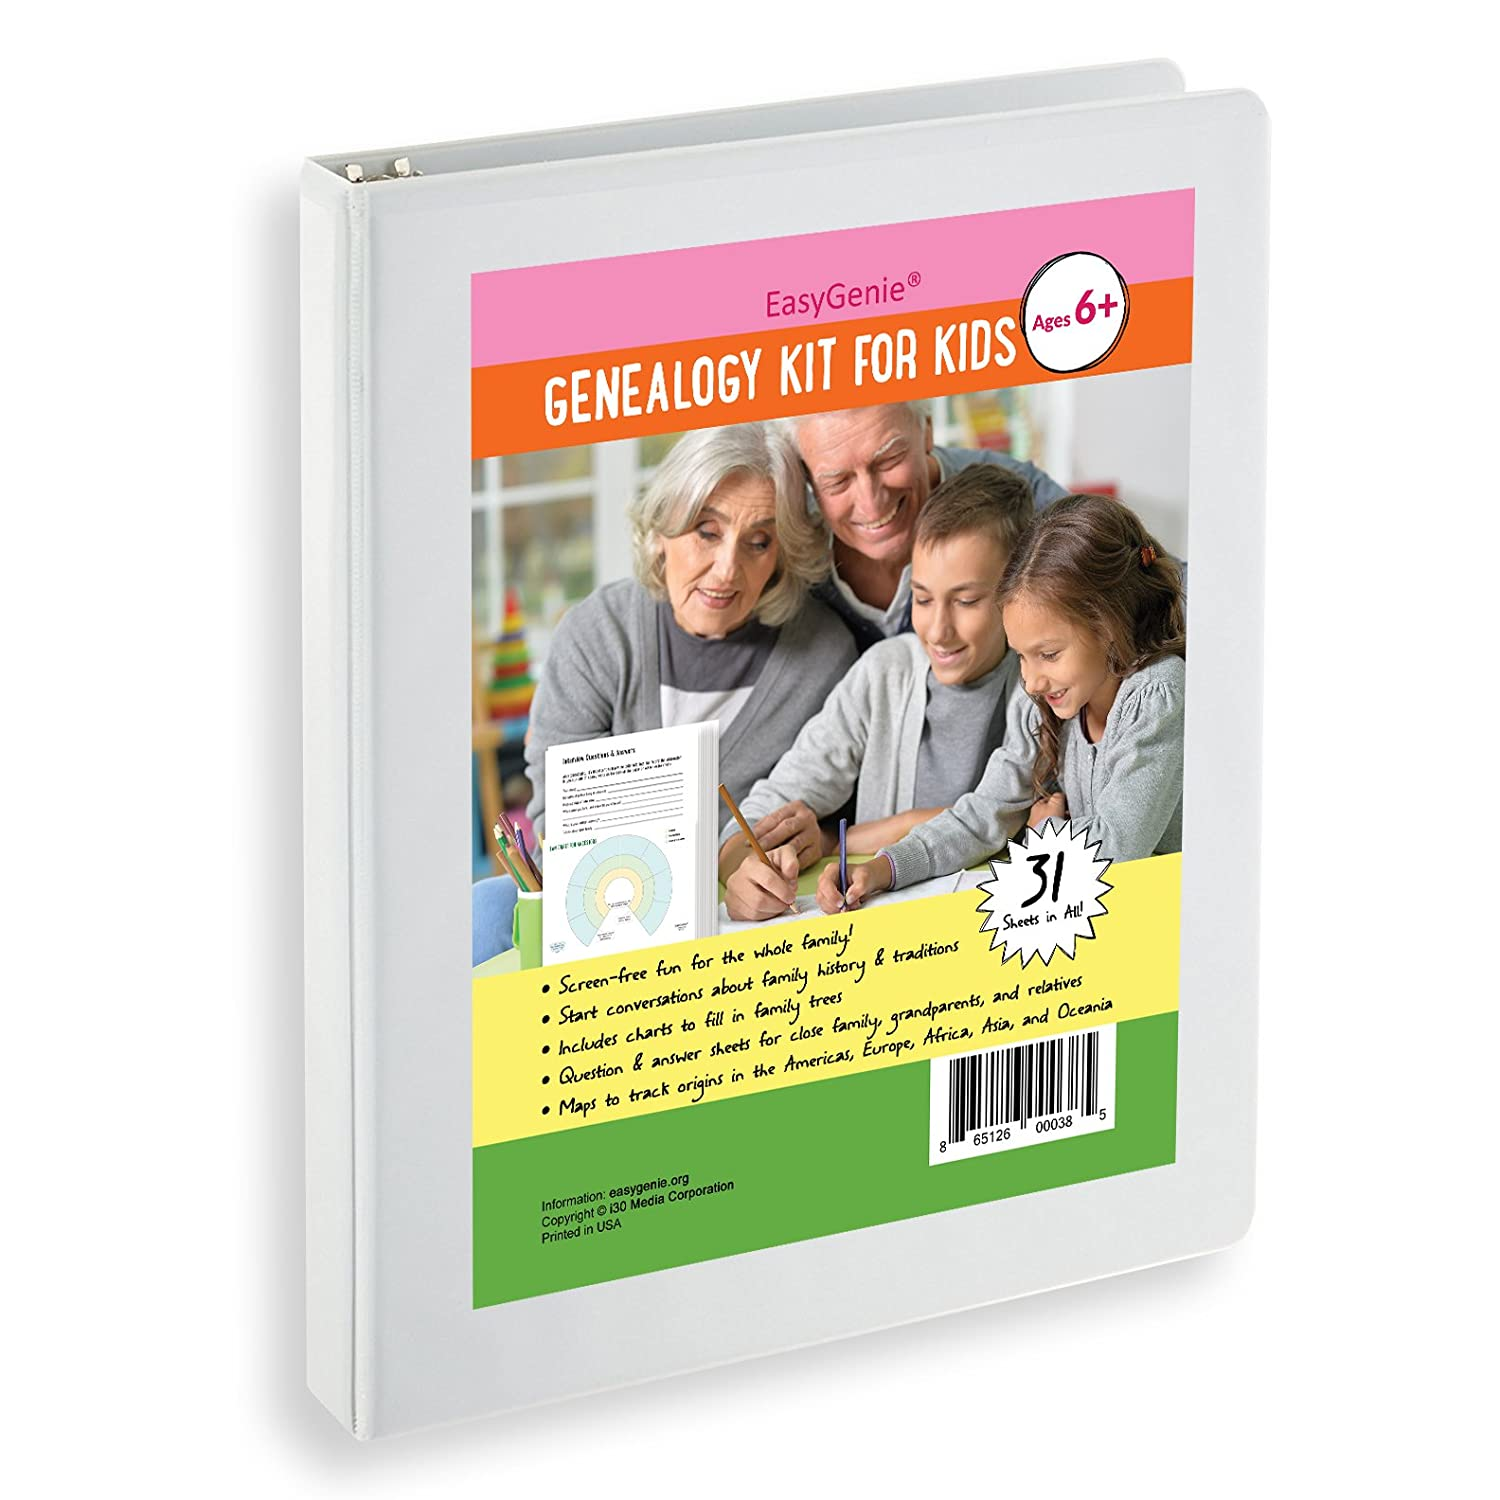 amazon com easygenie genealogy kit kids 31 sheets toys games